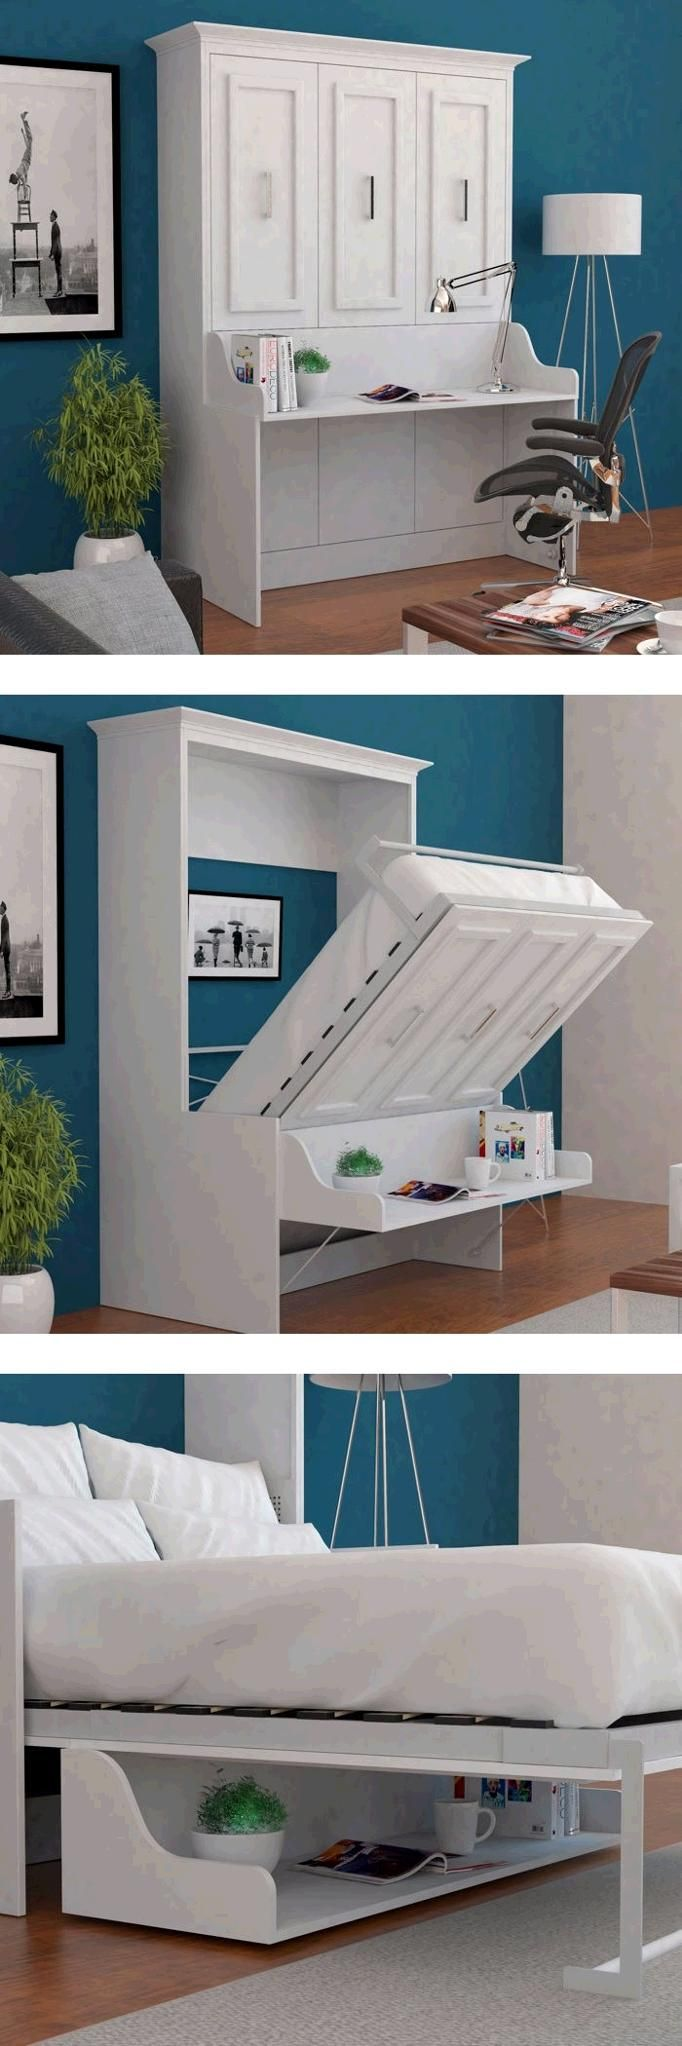 Pull out bed from wall - The Porter Full Wall Bed With A Desk Built In Is A Truly Unique And Versatile